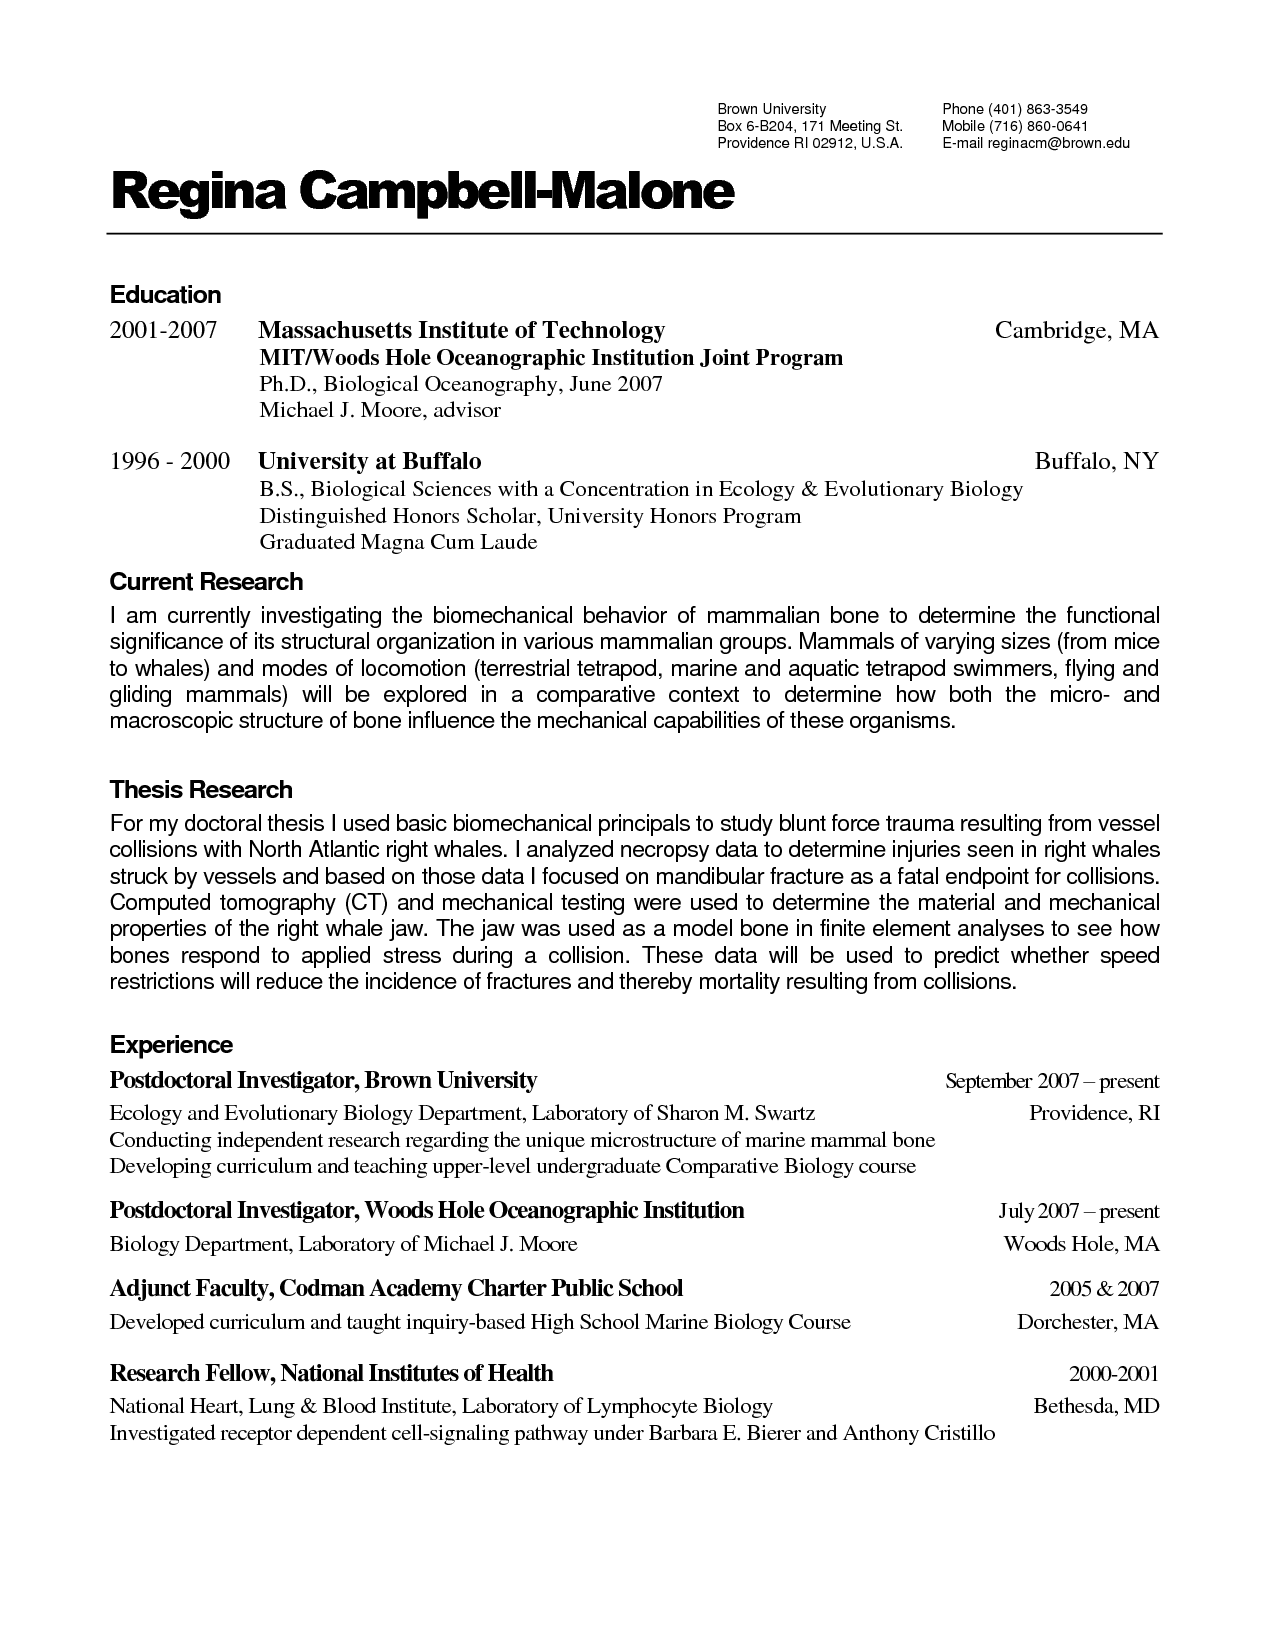 100 100 free resume templates for resume template 1000 images about